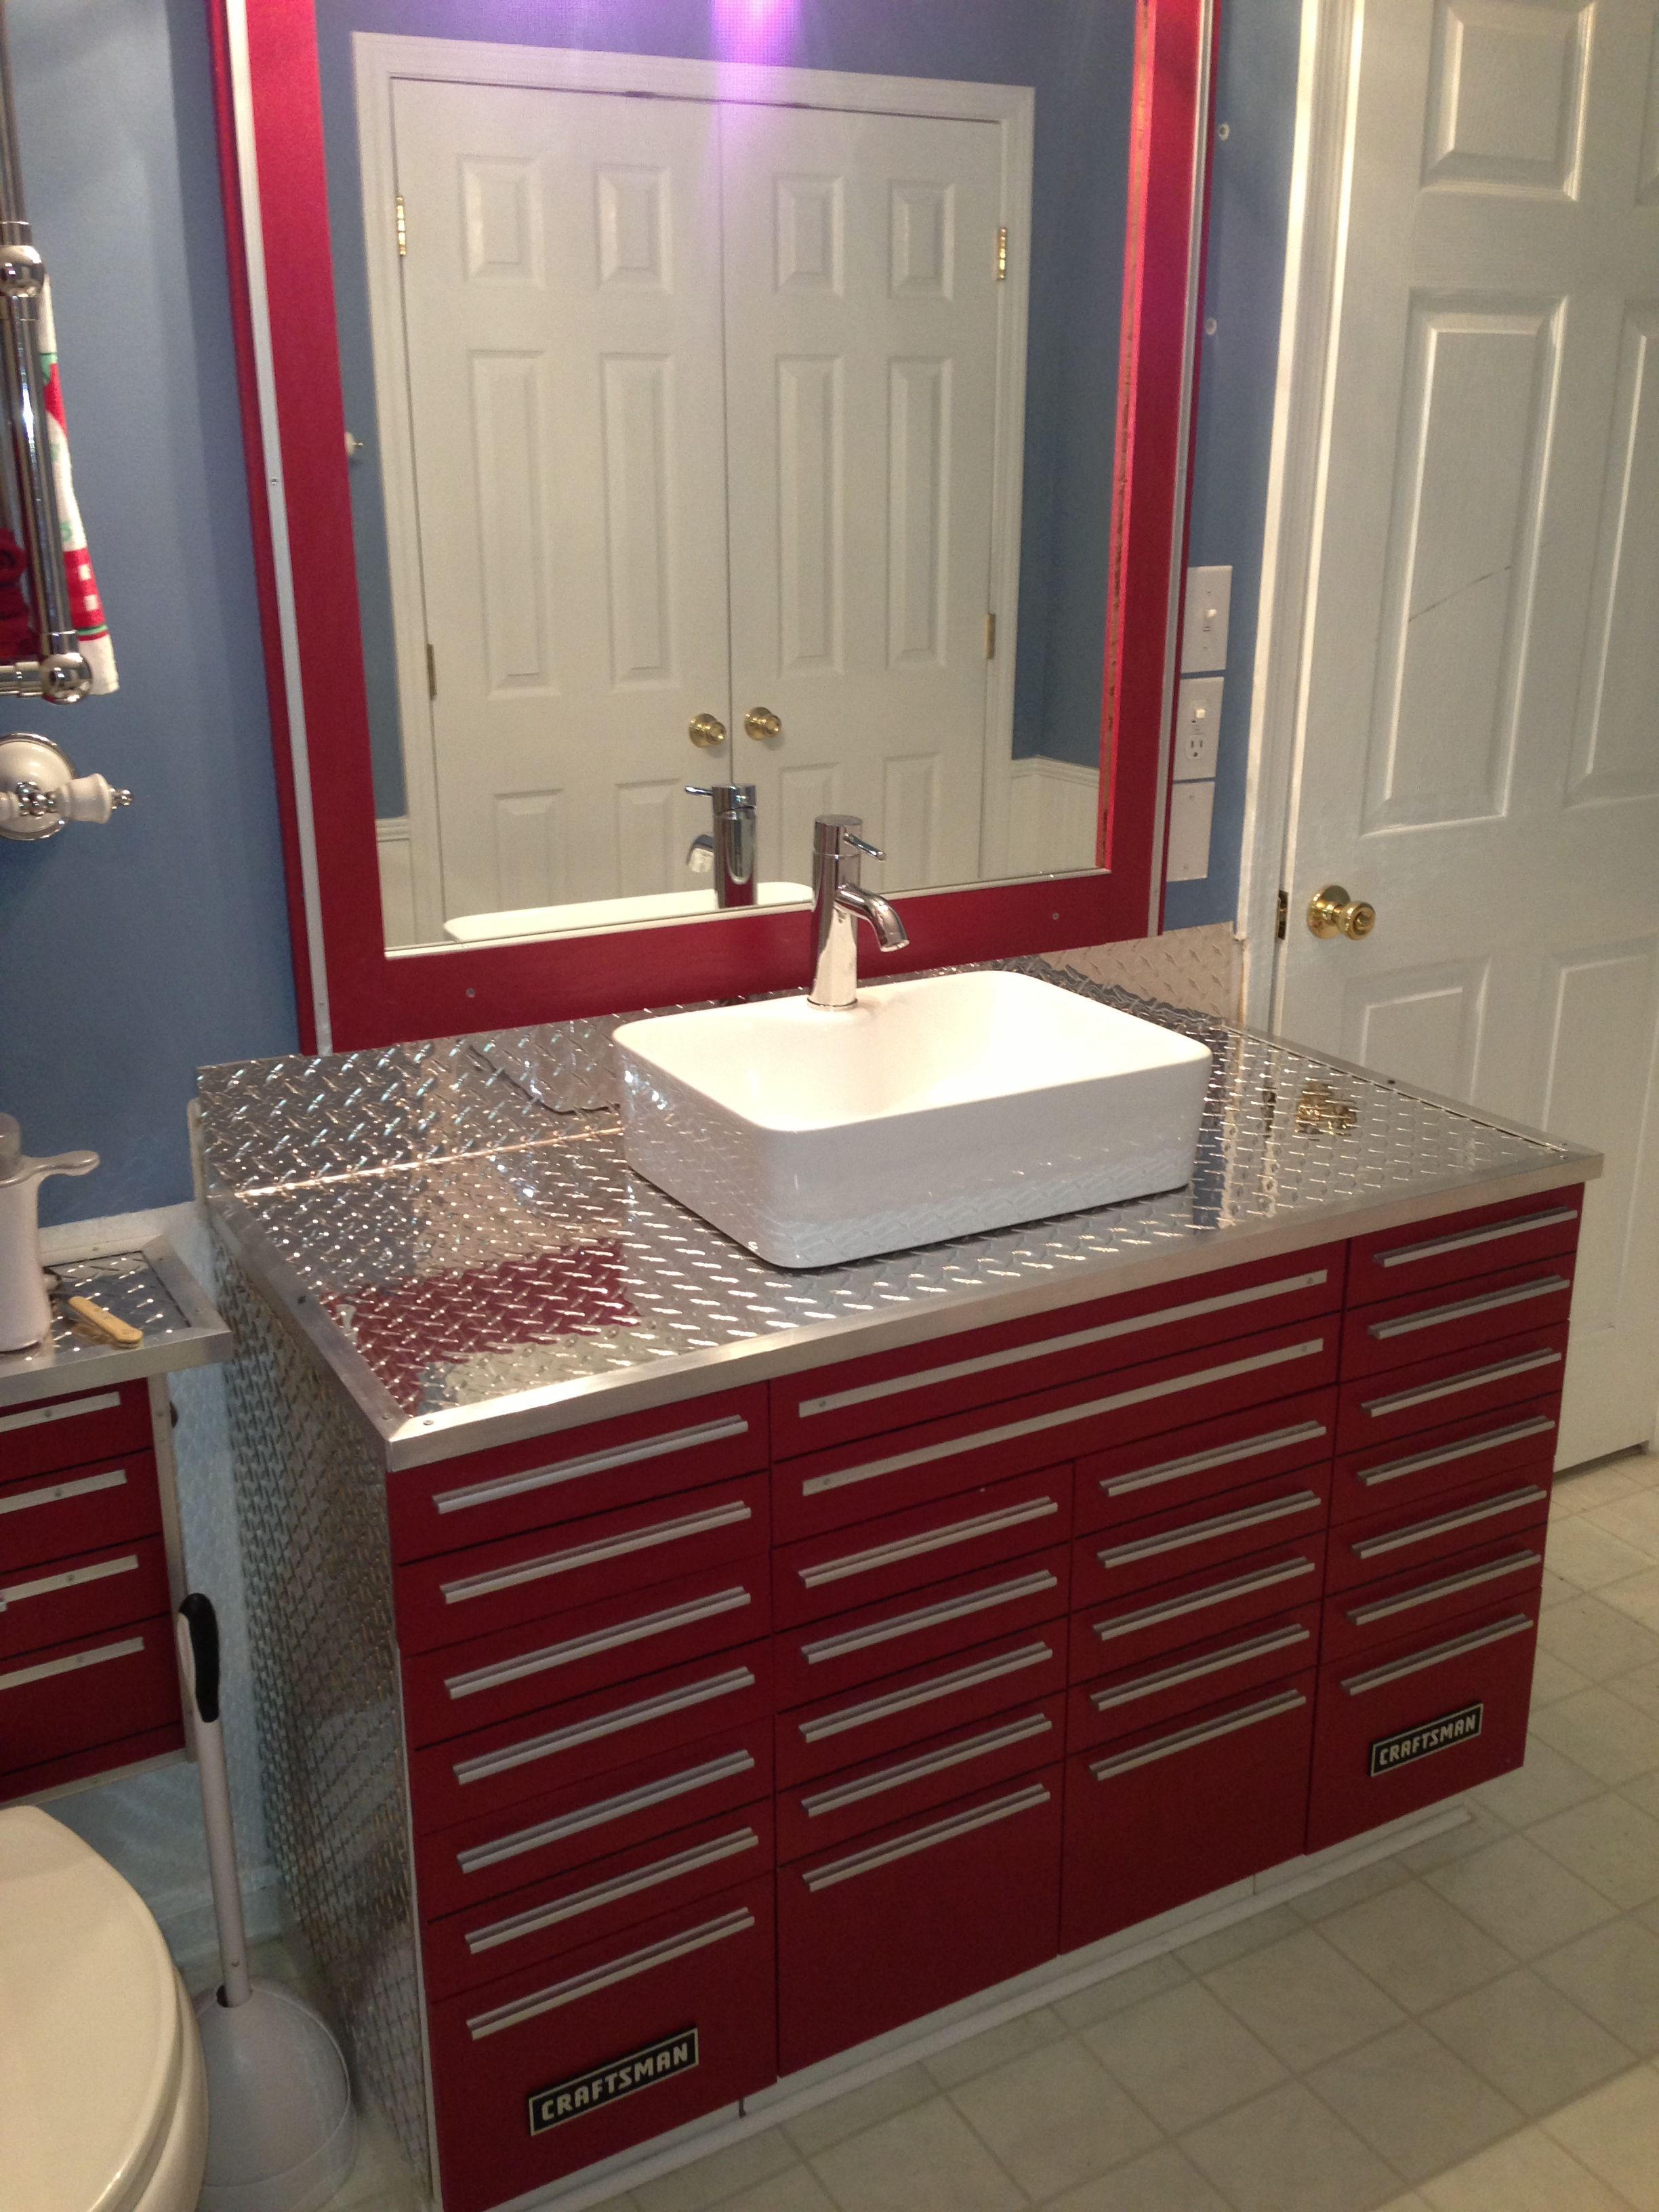 Craftsman tool box vanity with vessel sink unique - Where to shop for bathroom vanities ...